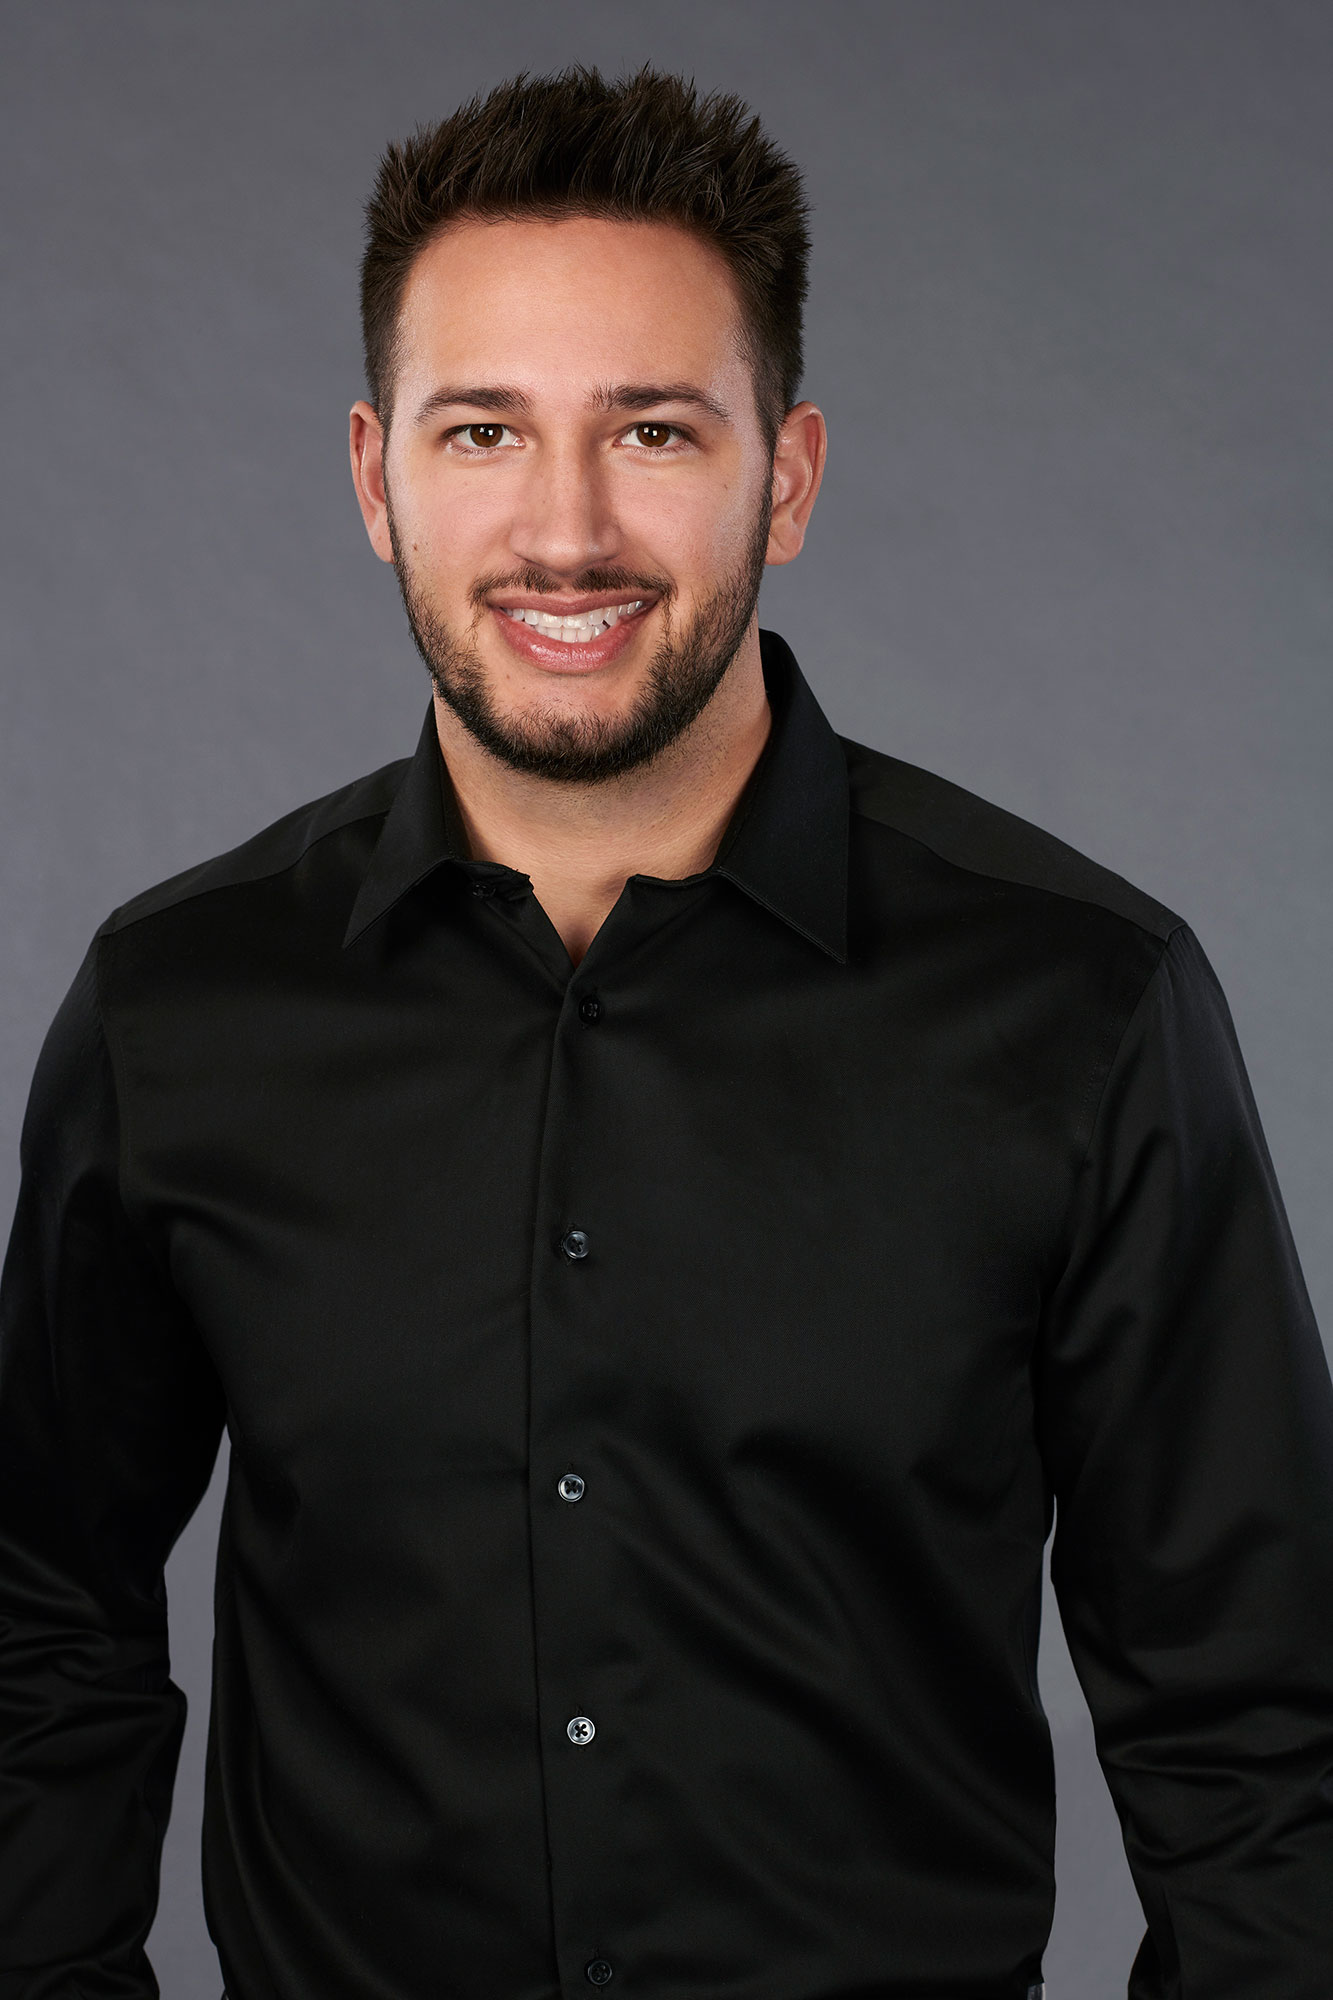 """'The Bachelorette' Season 15: 11 Strangest Revelations From Hannah Brown's Suitors' Bios - The Chicago native, 28, is """"an admirer of Kris Jenner """" and """"once ran in a circle around the mall food court, acting like a flying chicken."""""""